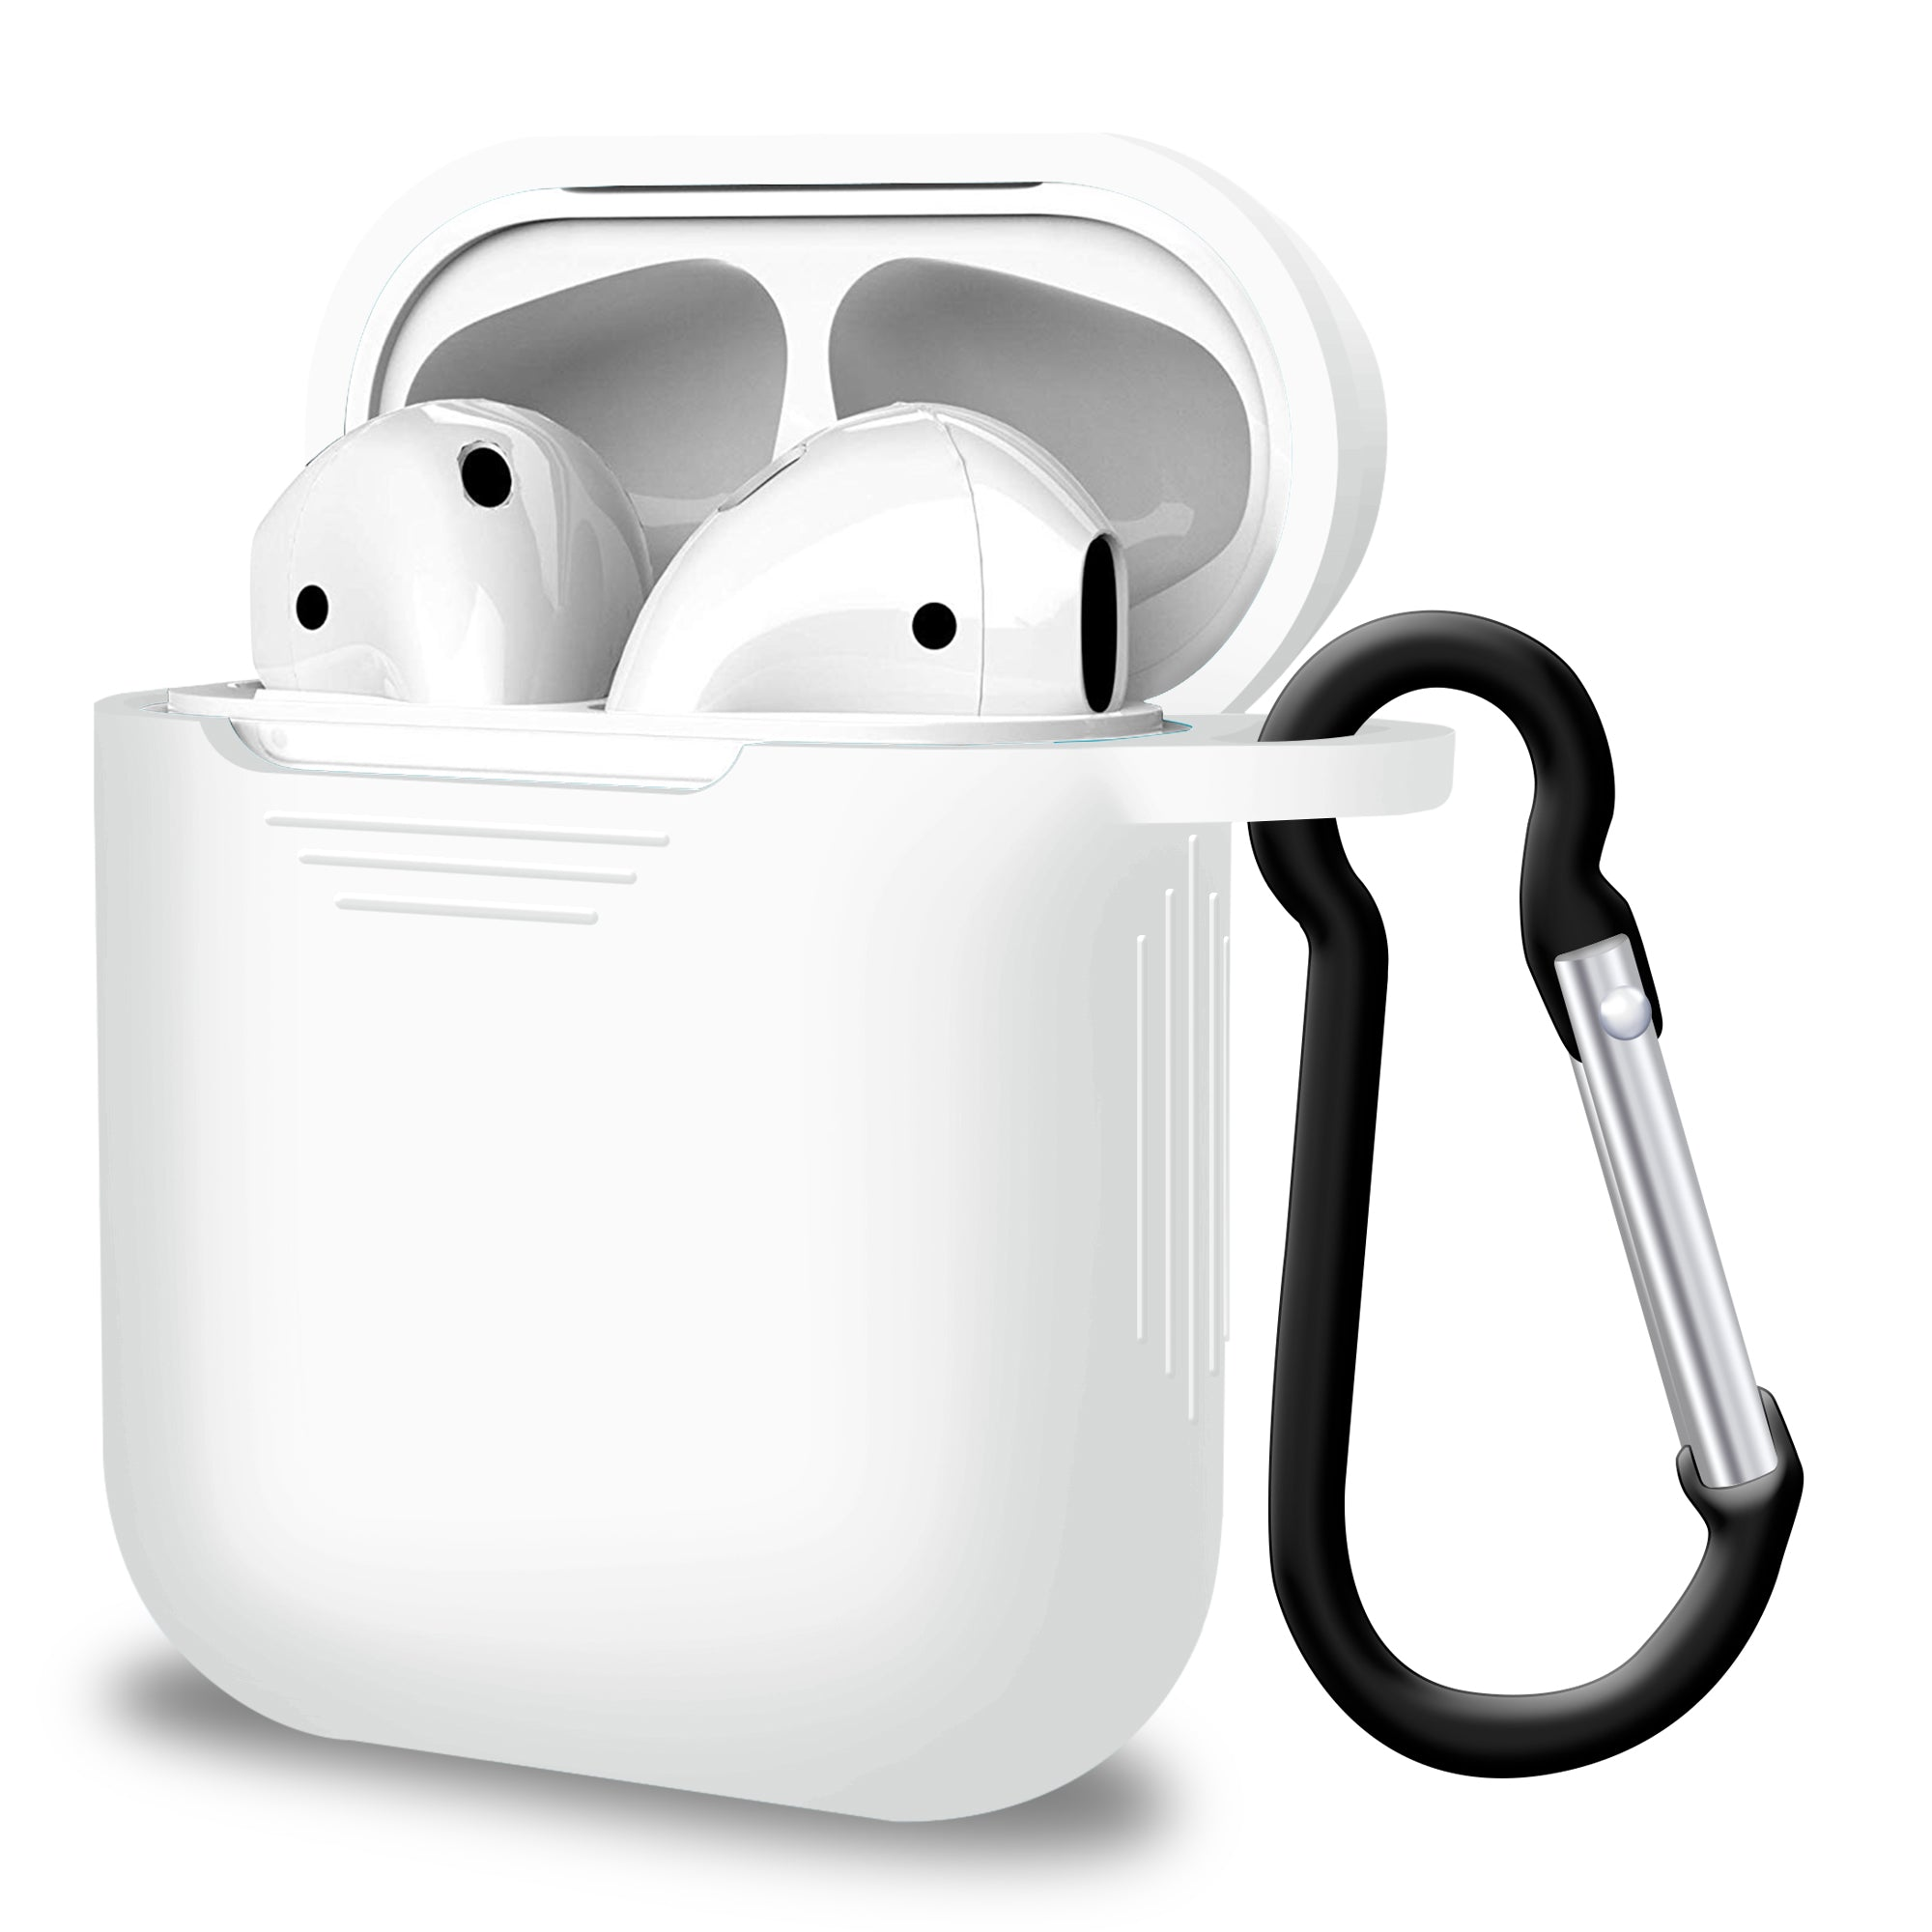 2 in 1 Apple Airpods Silicone Case Earphones Charging Skin Cover White, Audio by TradeNRG